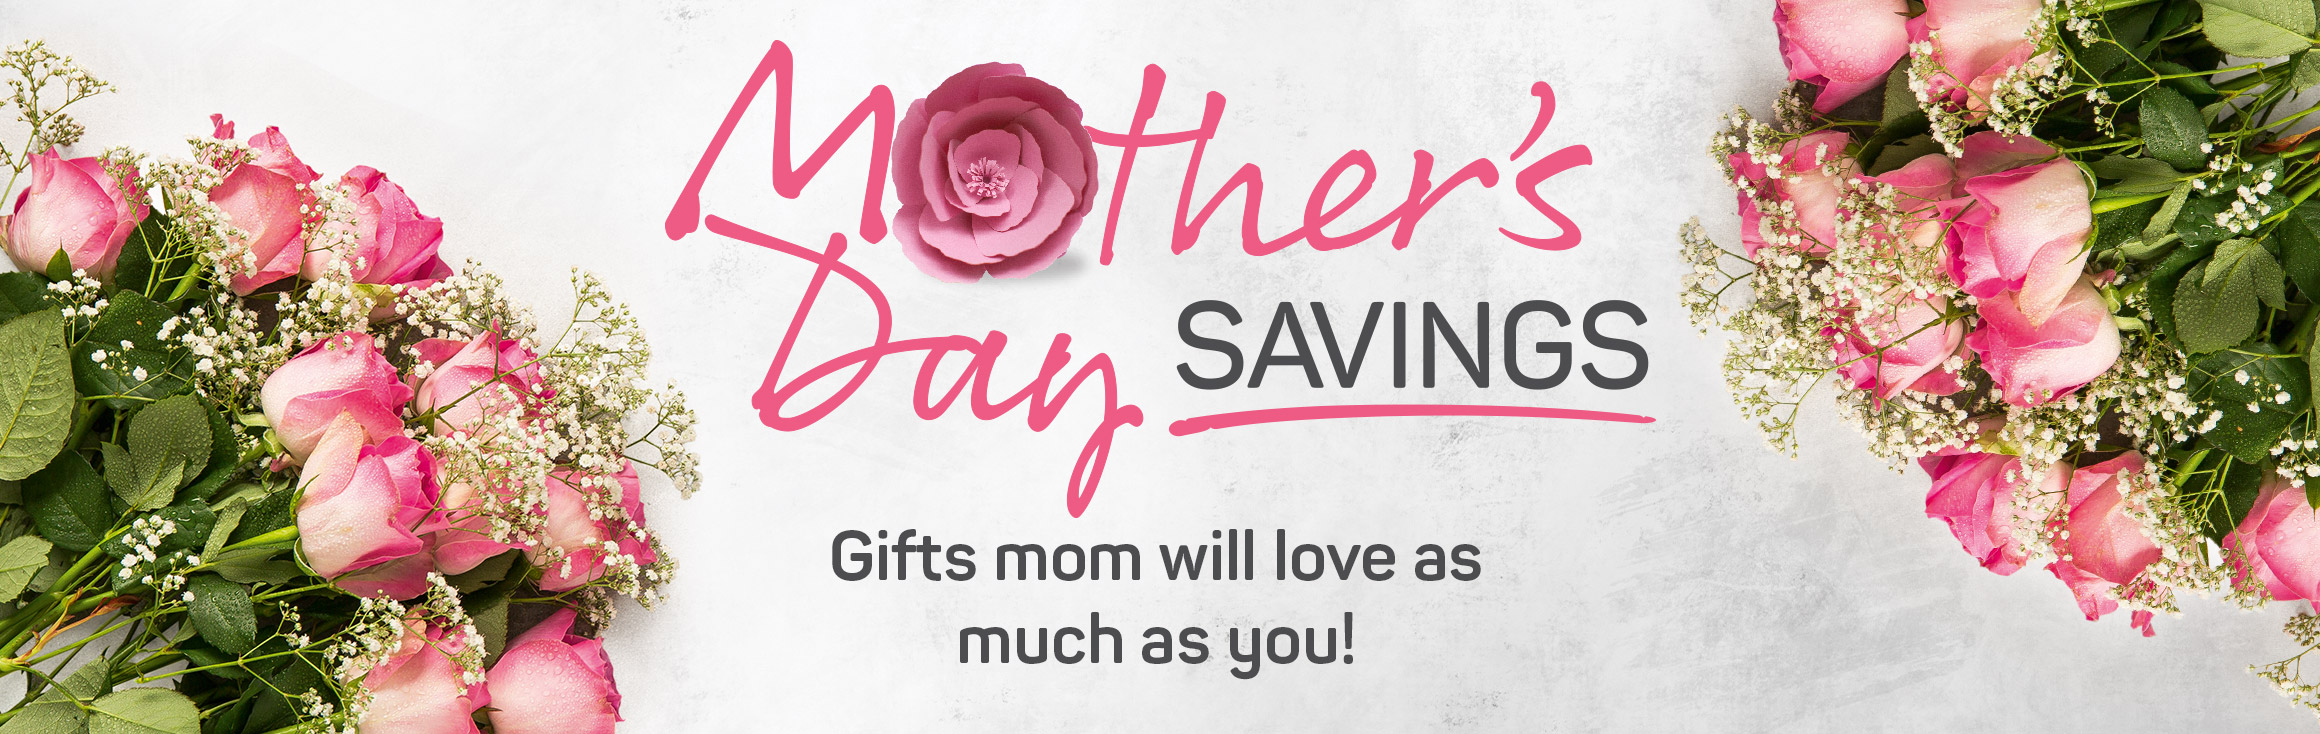 Mother's Day savings. Gifts mom will love as much as you!